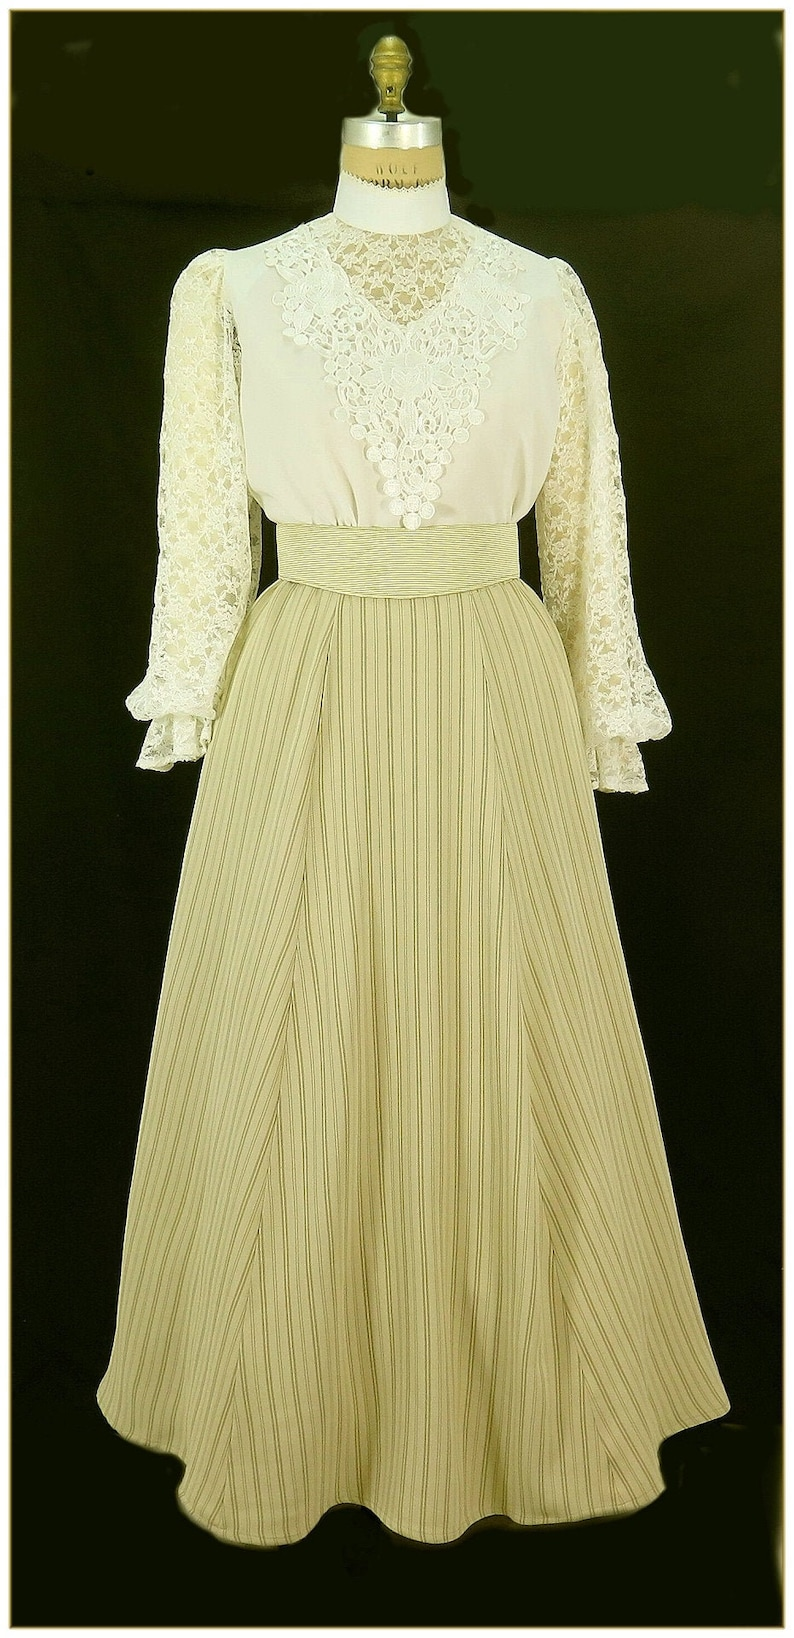 Victorian Skirts | Bustle, Walking, Edwardian Skirts Victorian Khaki Tan Stripe Skirt $65.00 AT vintagedancer.com